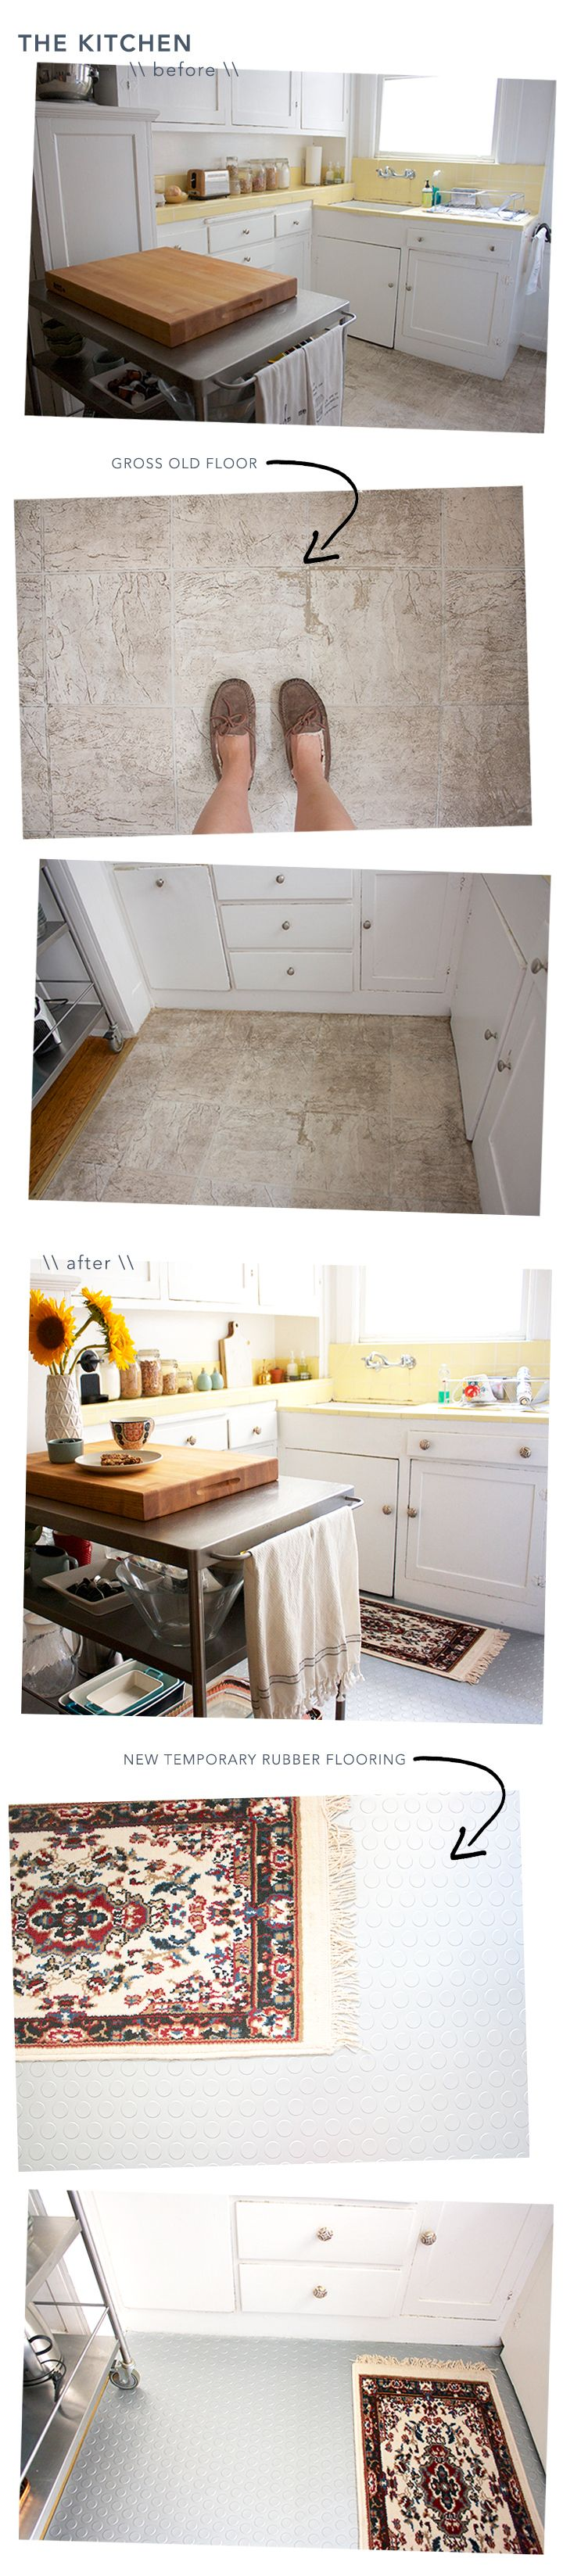 Before And After: Temporary Kitchen Floor